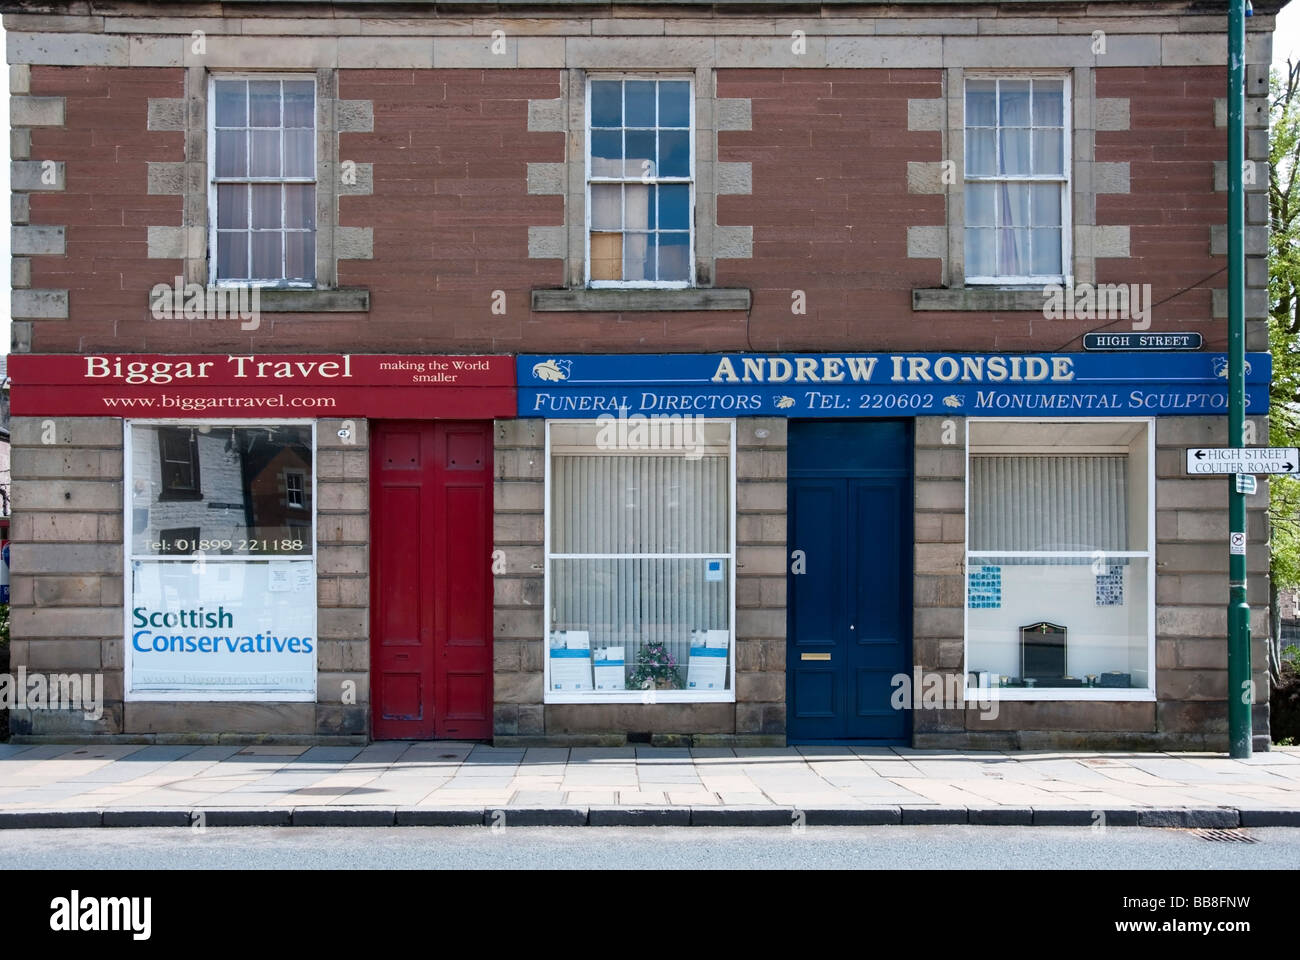 Characteristic Commercial Premises High Street Biggar - Stock Image